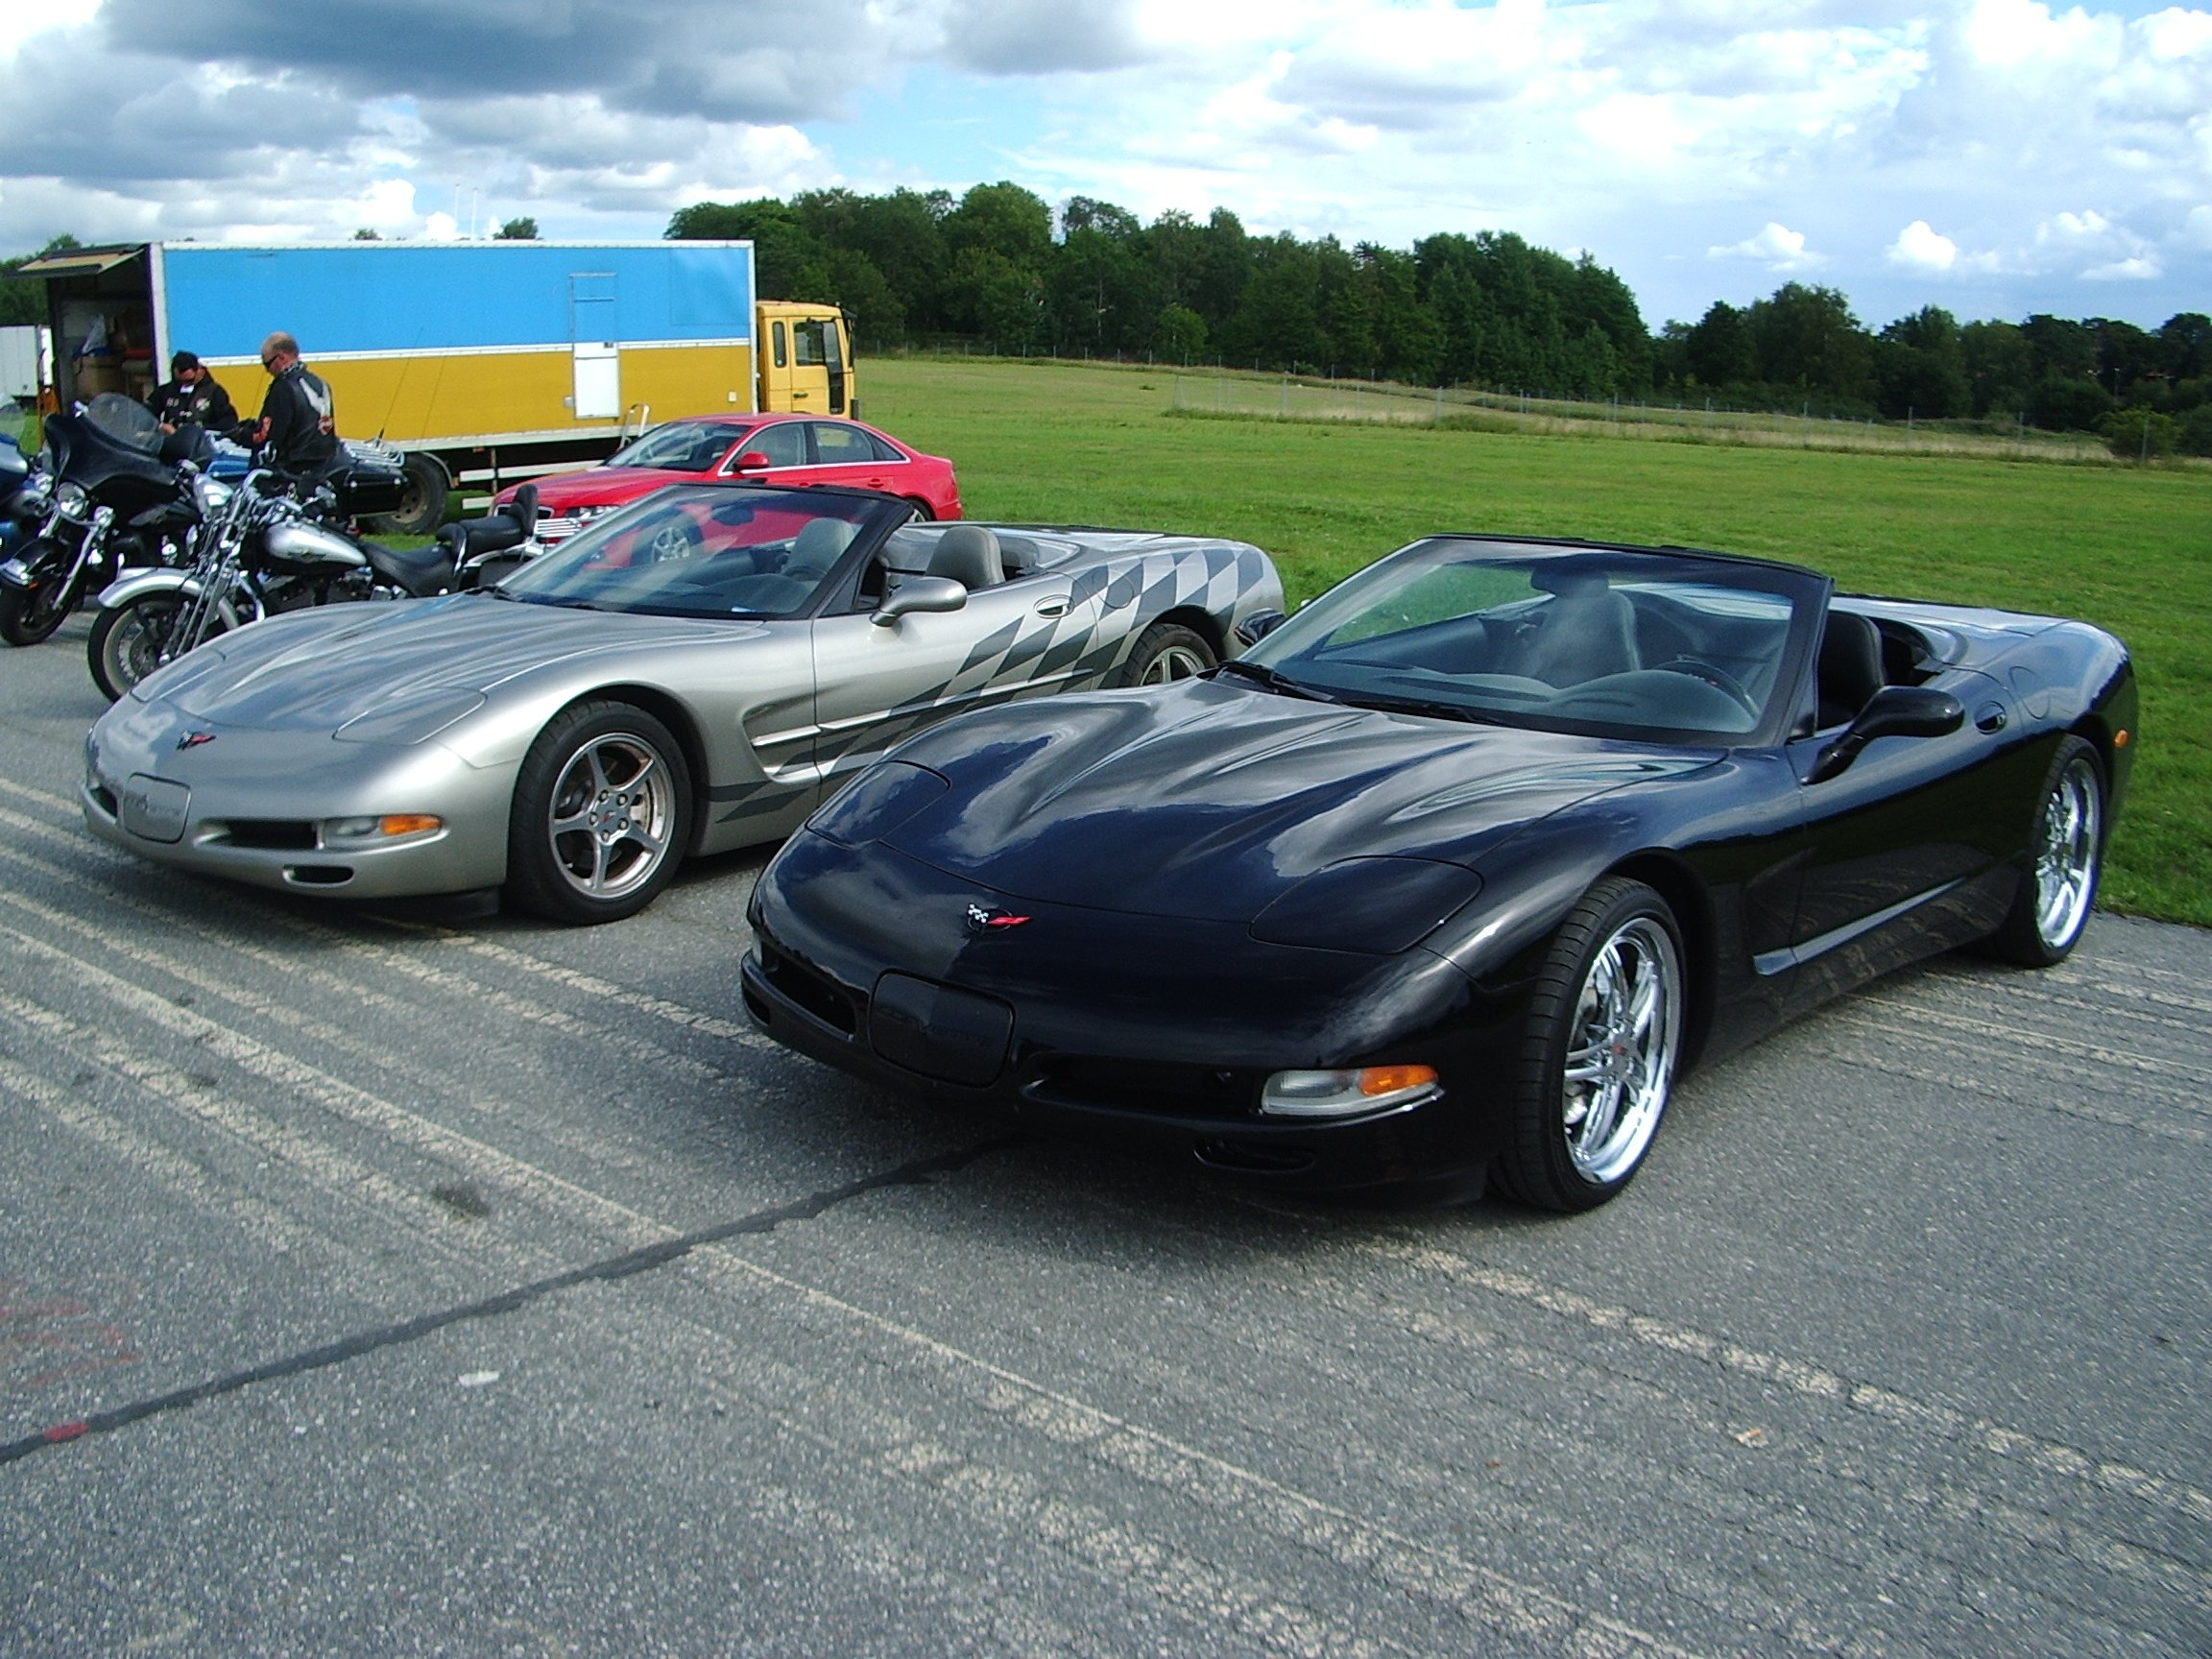 Modern American Muscle Cars At Barkarby (Stockholm And Beyond